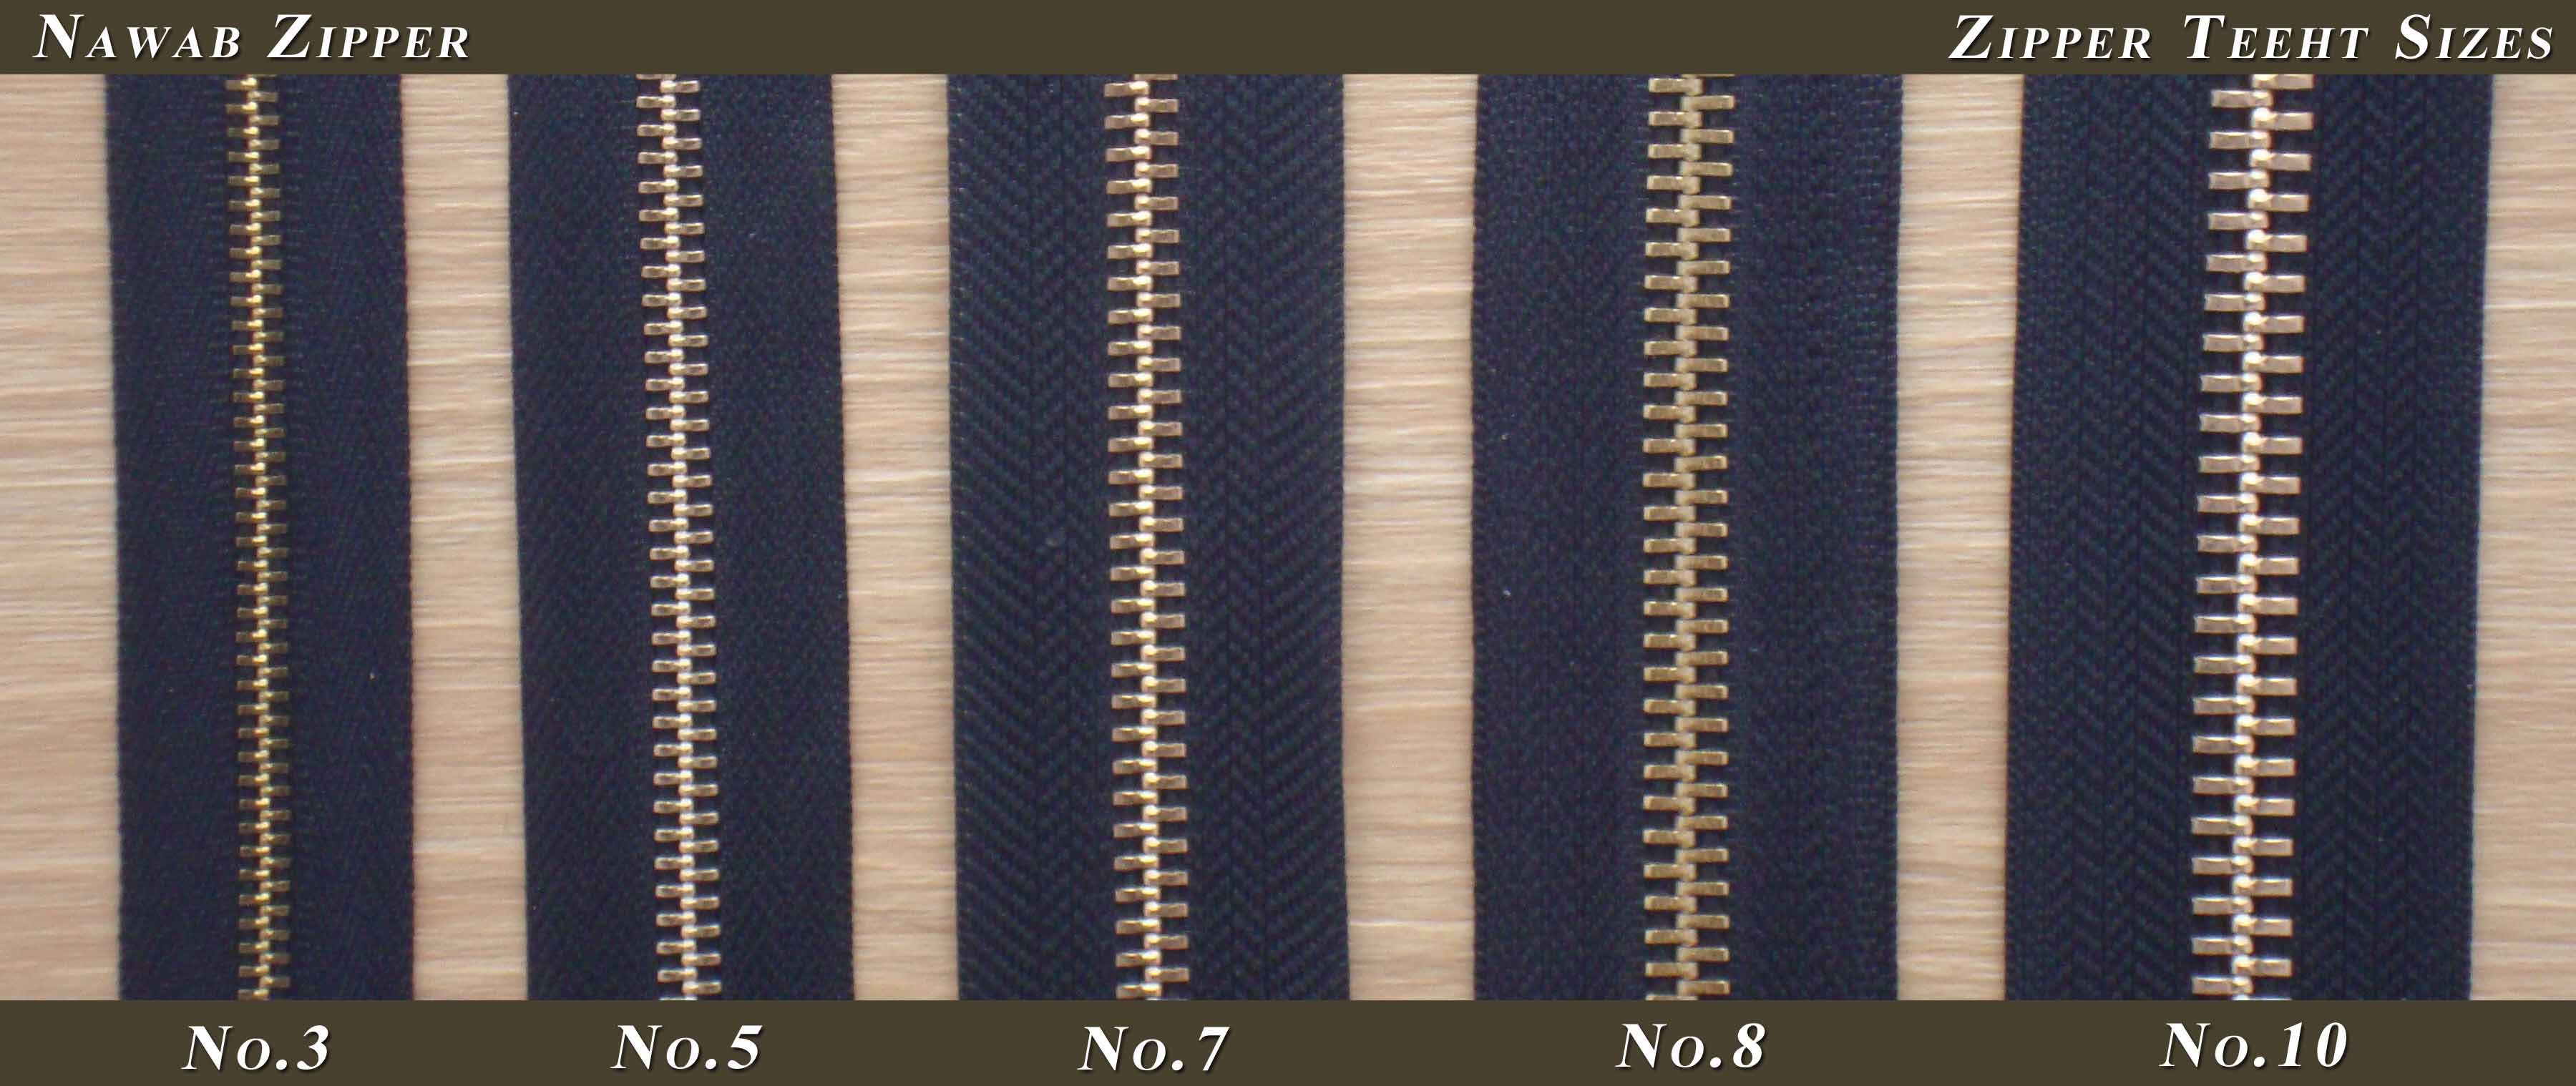 "1. Determine the final length you want the zipper to be. At the top end of the zipper place a mark at this measurement (Mark #1). Place another mark (Mark #2) 1"" above Mark #1. 2. With the zipper pull below Mark #1 trim both sides of the zipper at Mark #2. Us-ing a match or candle sear the raw edges of the zipper tape to prevent raveling. 3."